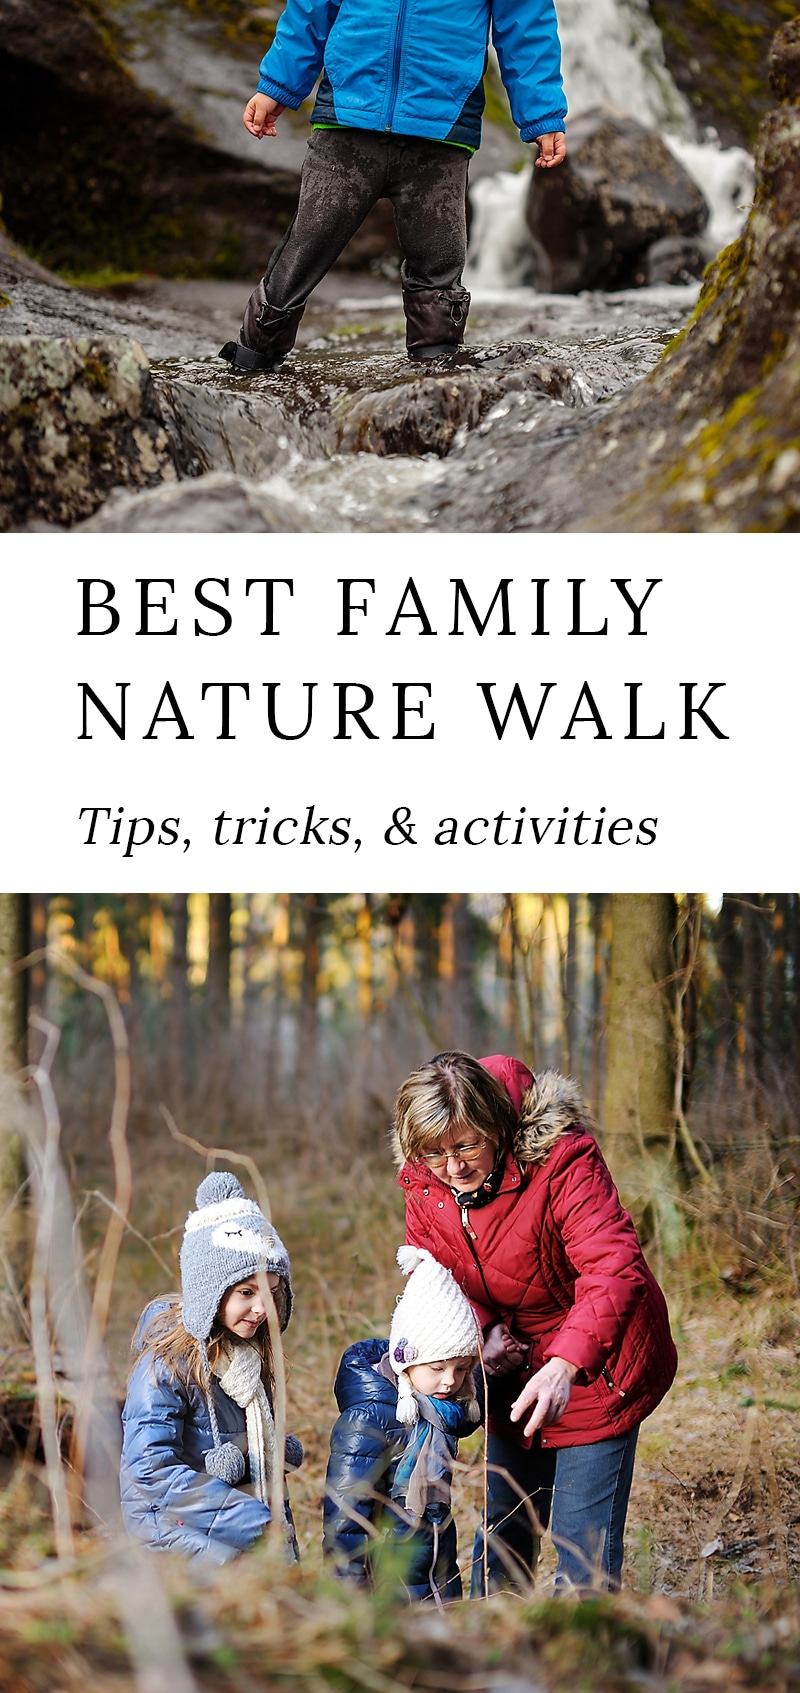 Practical nature walk tips, tricks, and fun nature walk activities for families with toddlers, preschoolers, and school-age kids. #nature #kids via @firefliesandmudpies